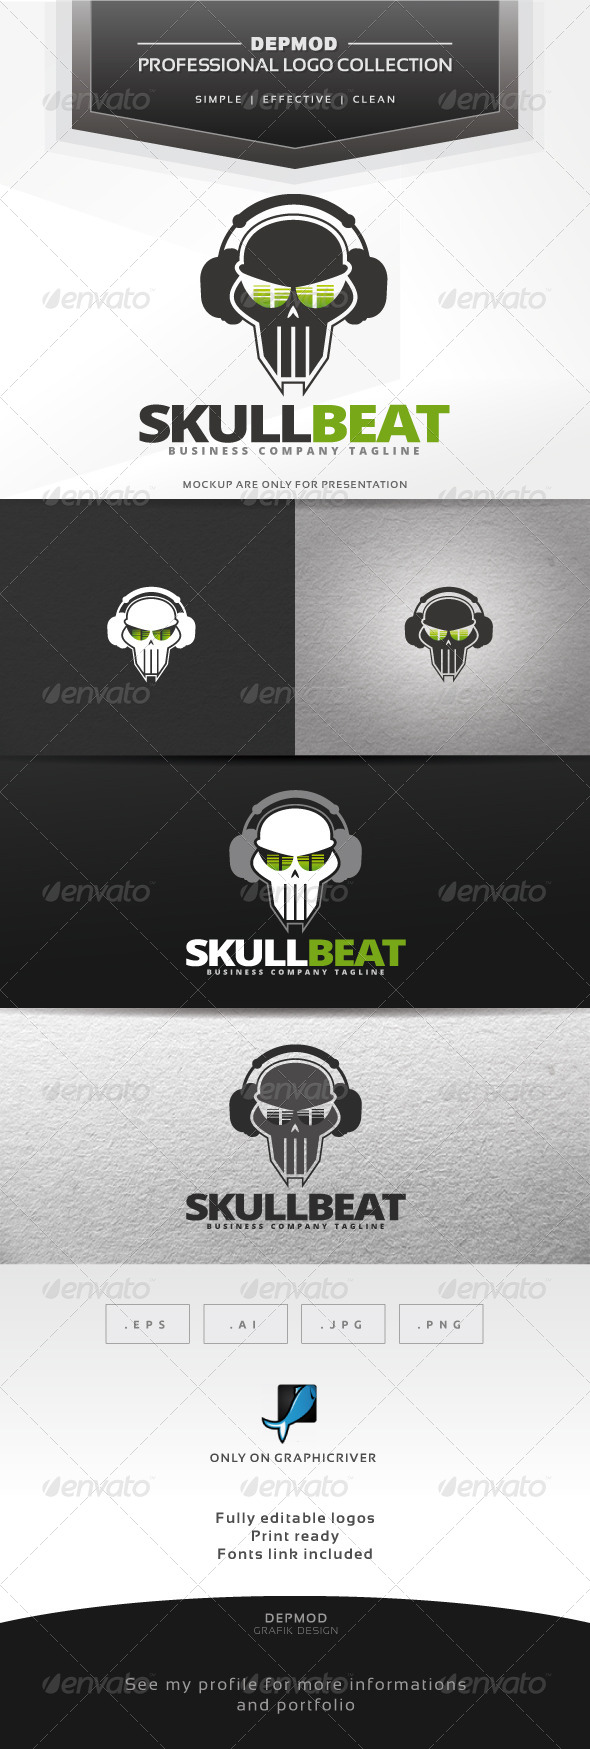 GraphicRiver Skull Beat Logo 6921492